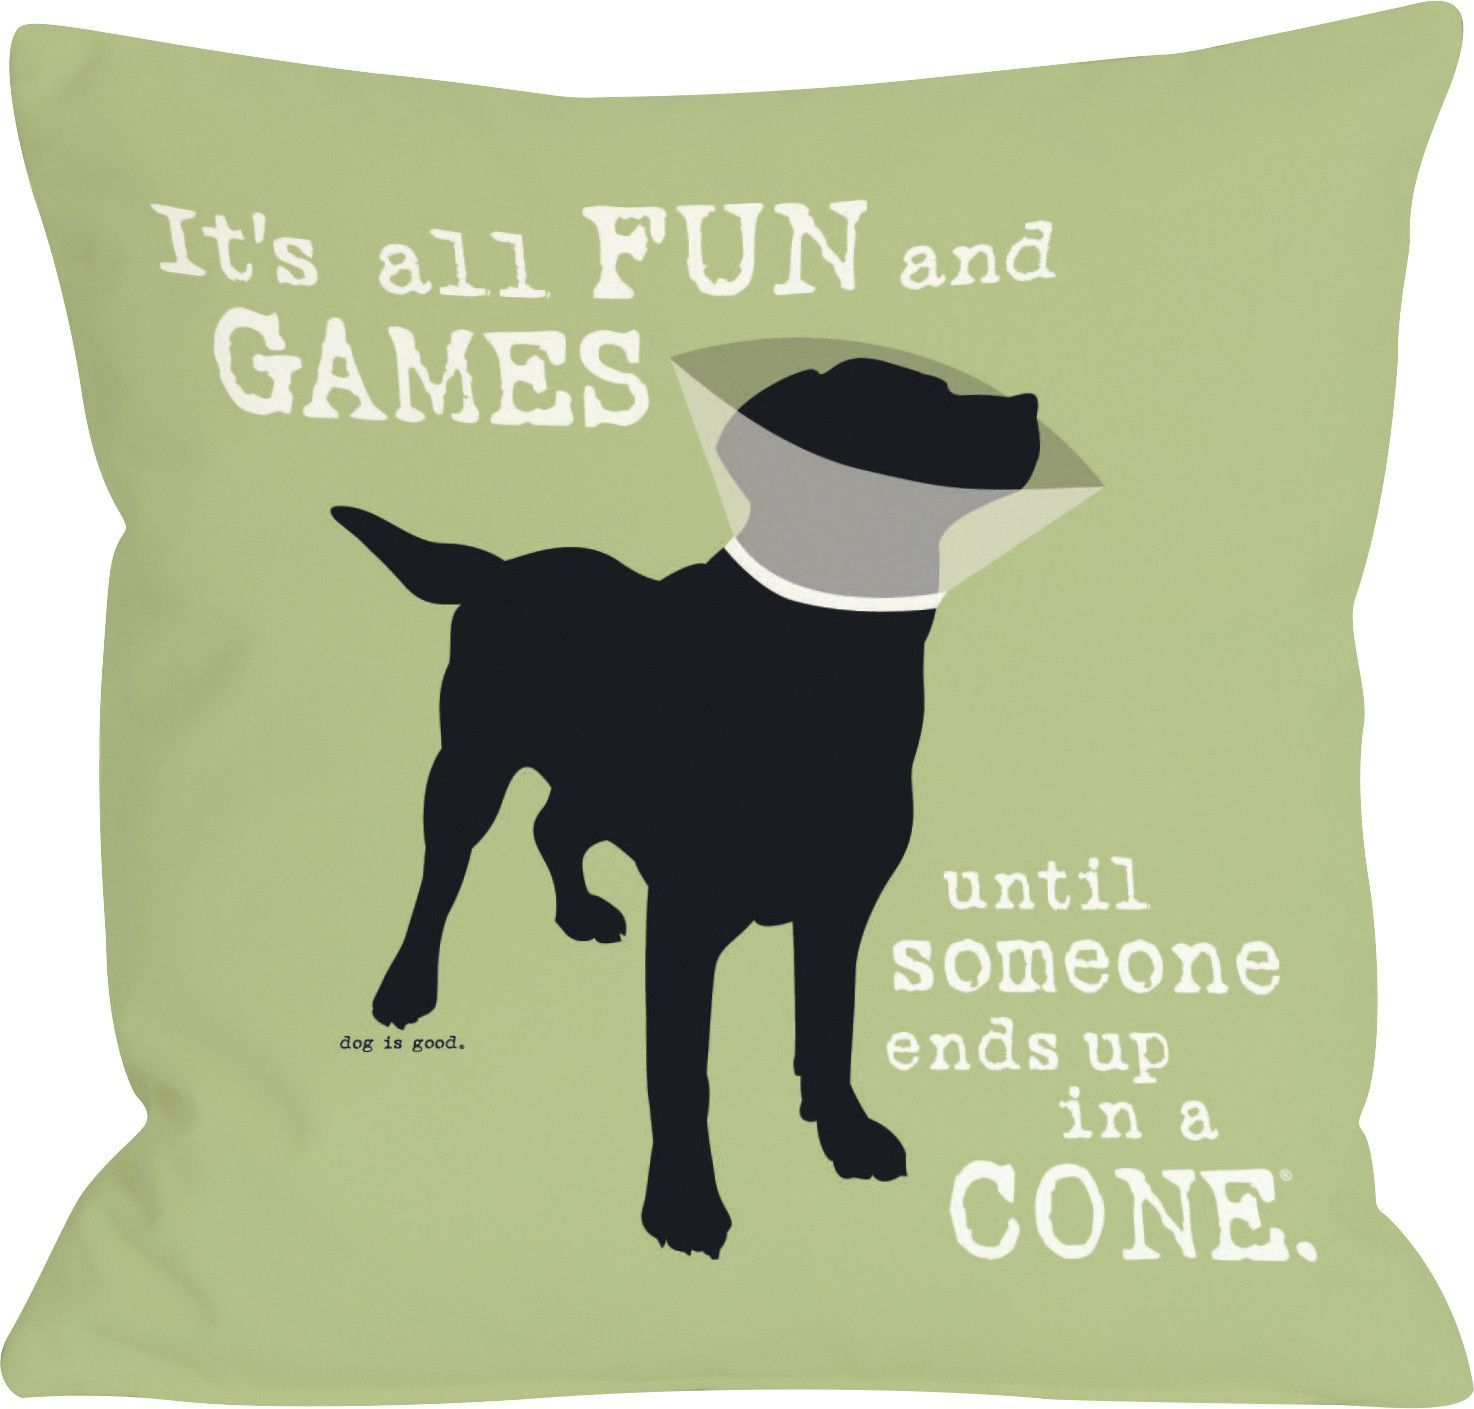 Doggy décor its all fun and games throw pillow game fun and doggies